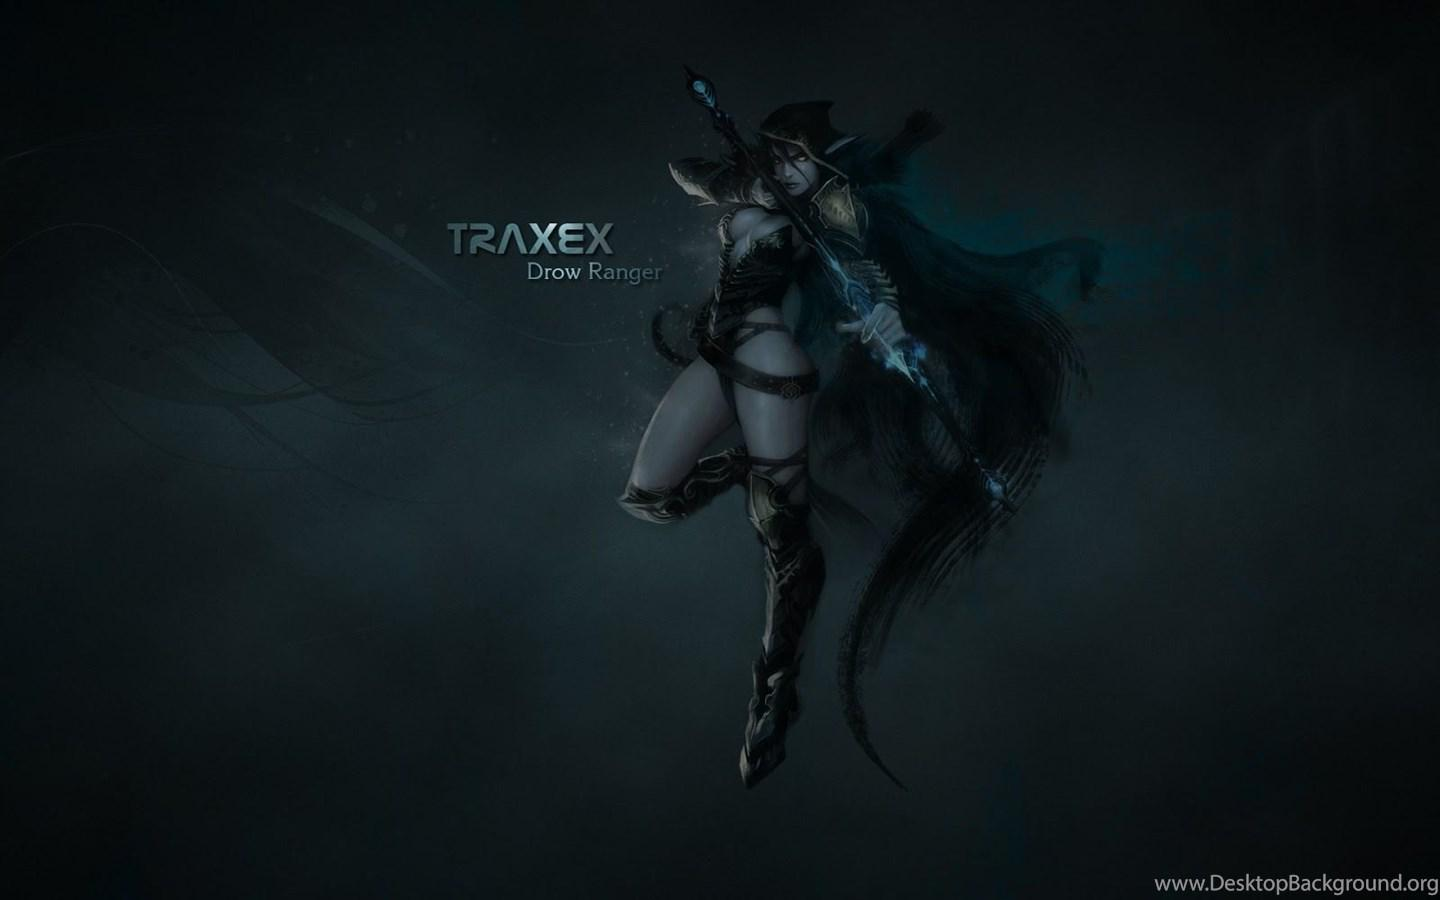 Download x HD Wallpaper traxex bow arrow dota drow